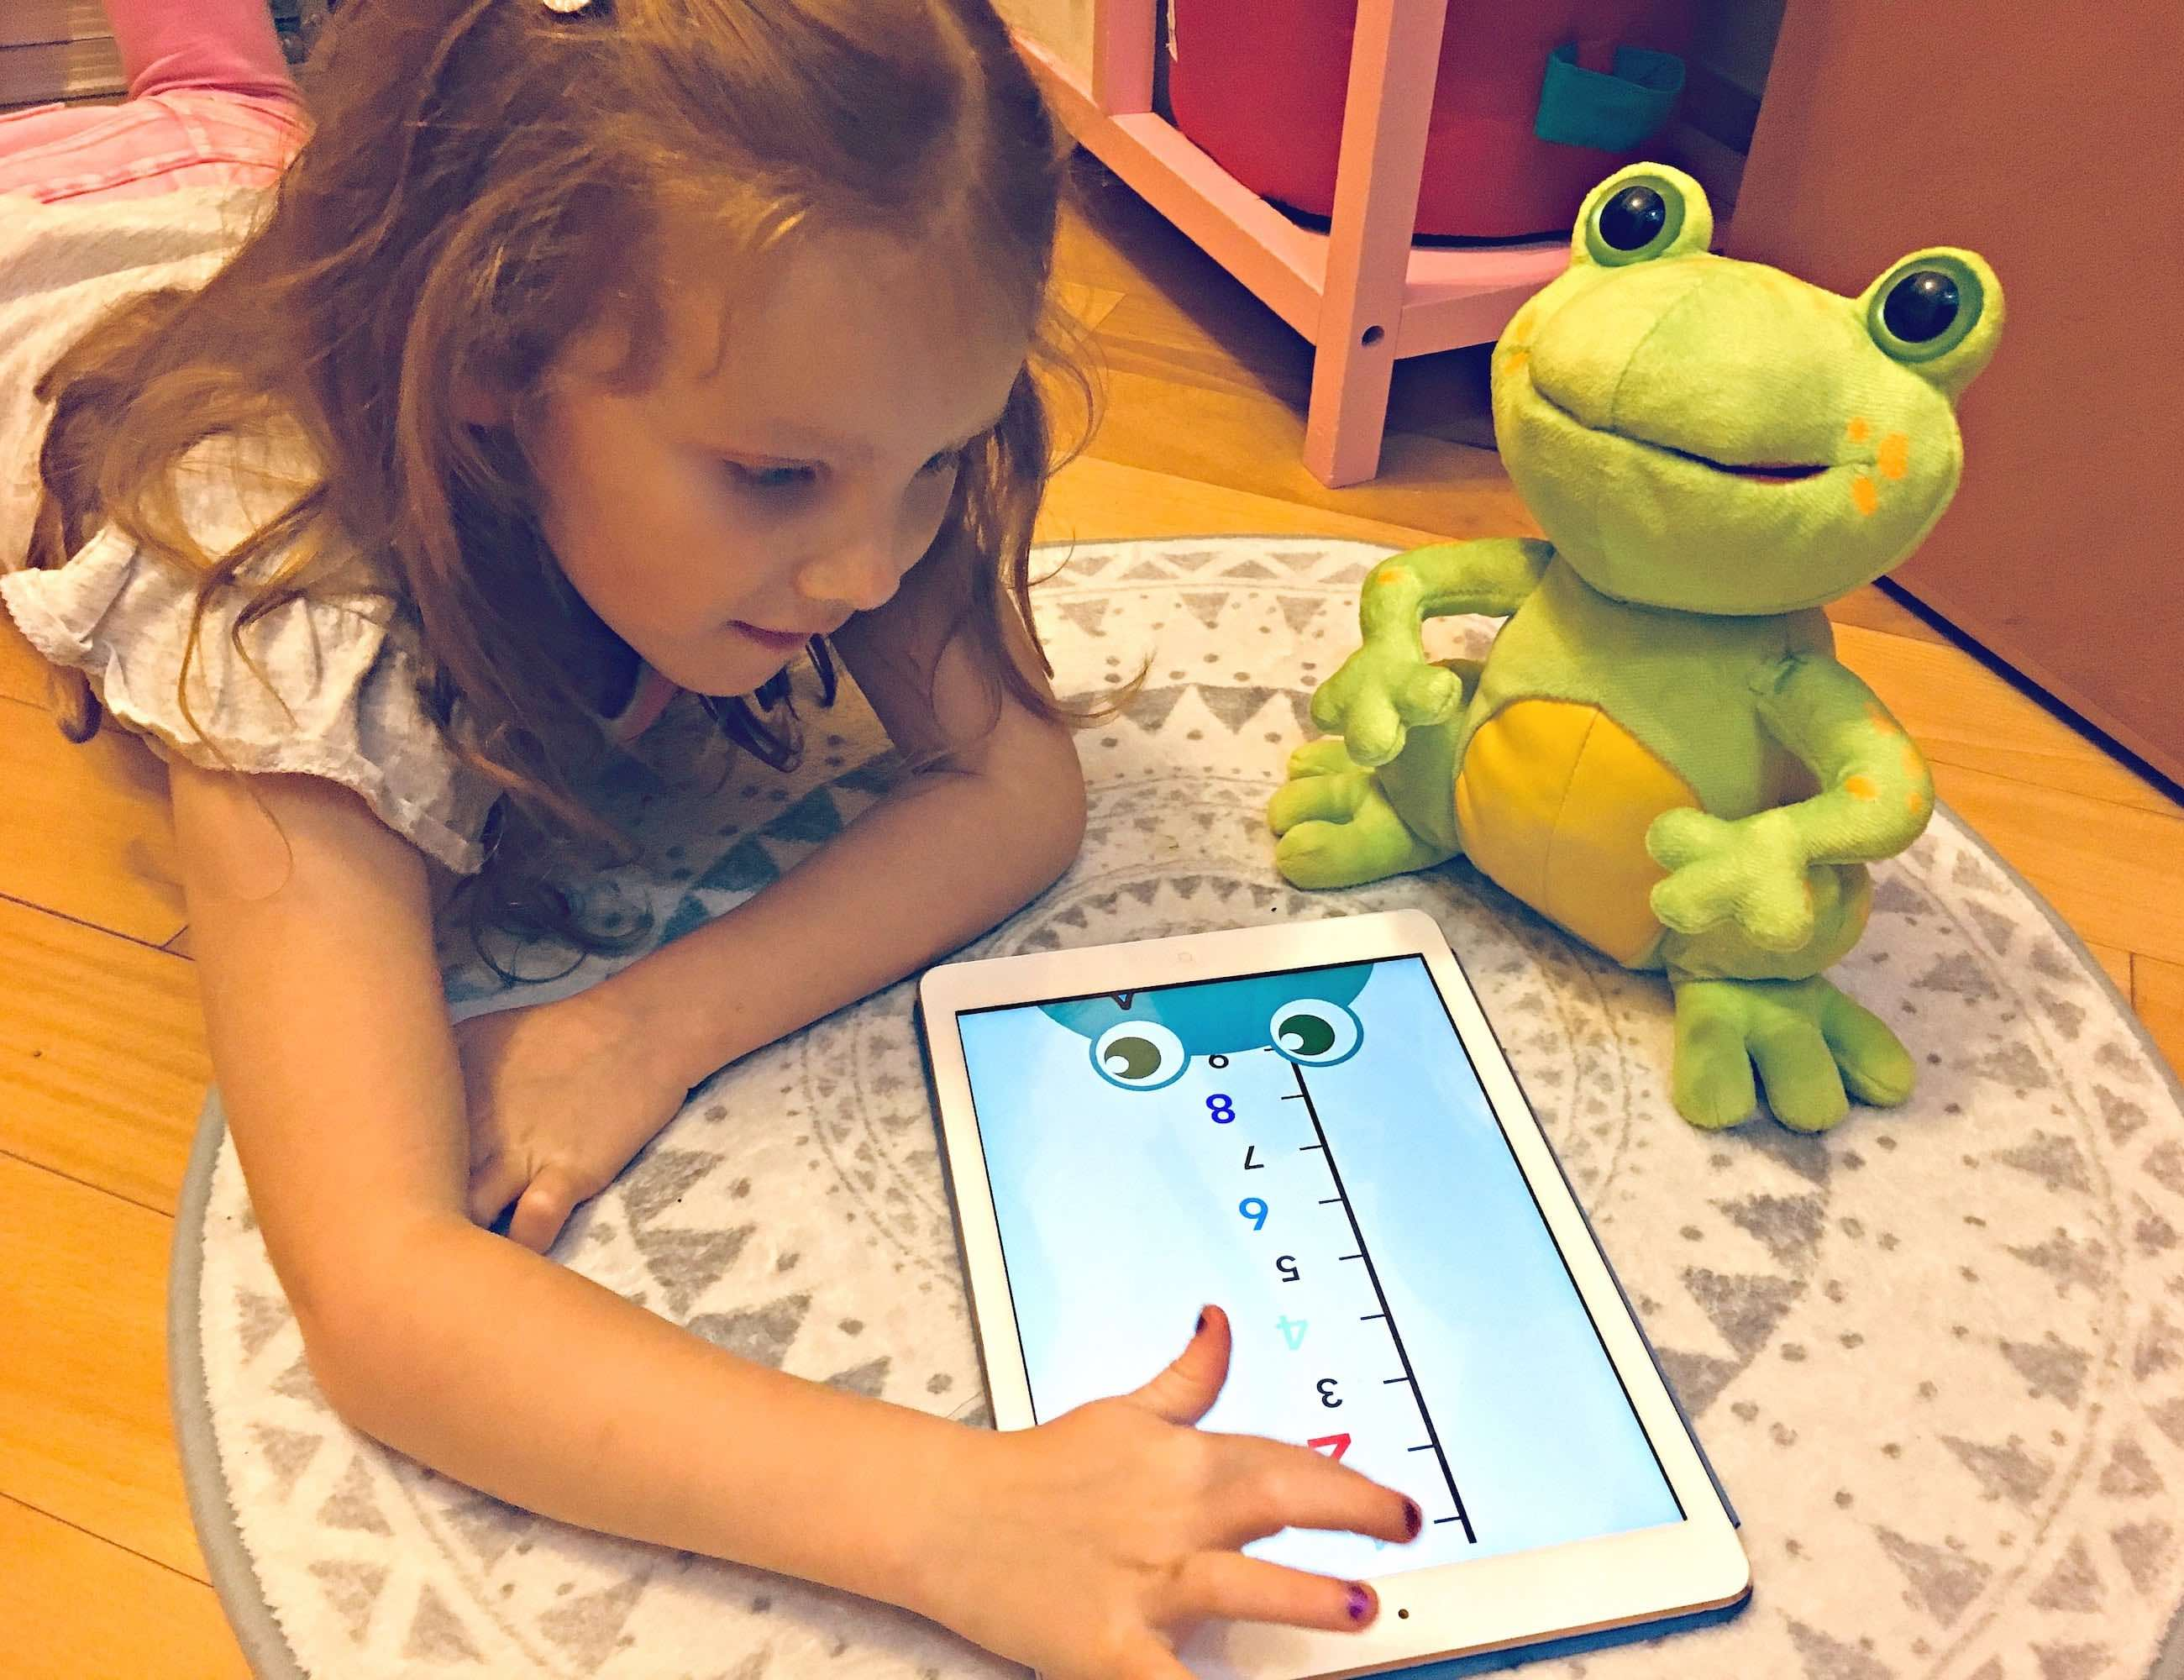 FroggySMART Smart Interactive Toy